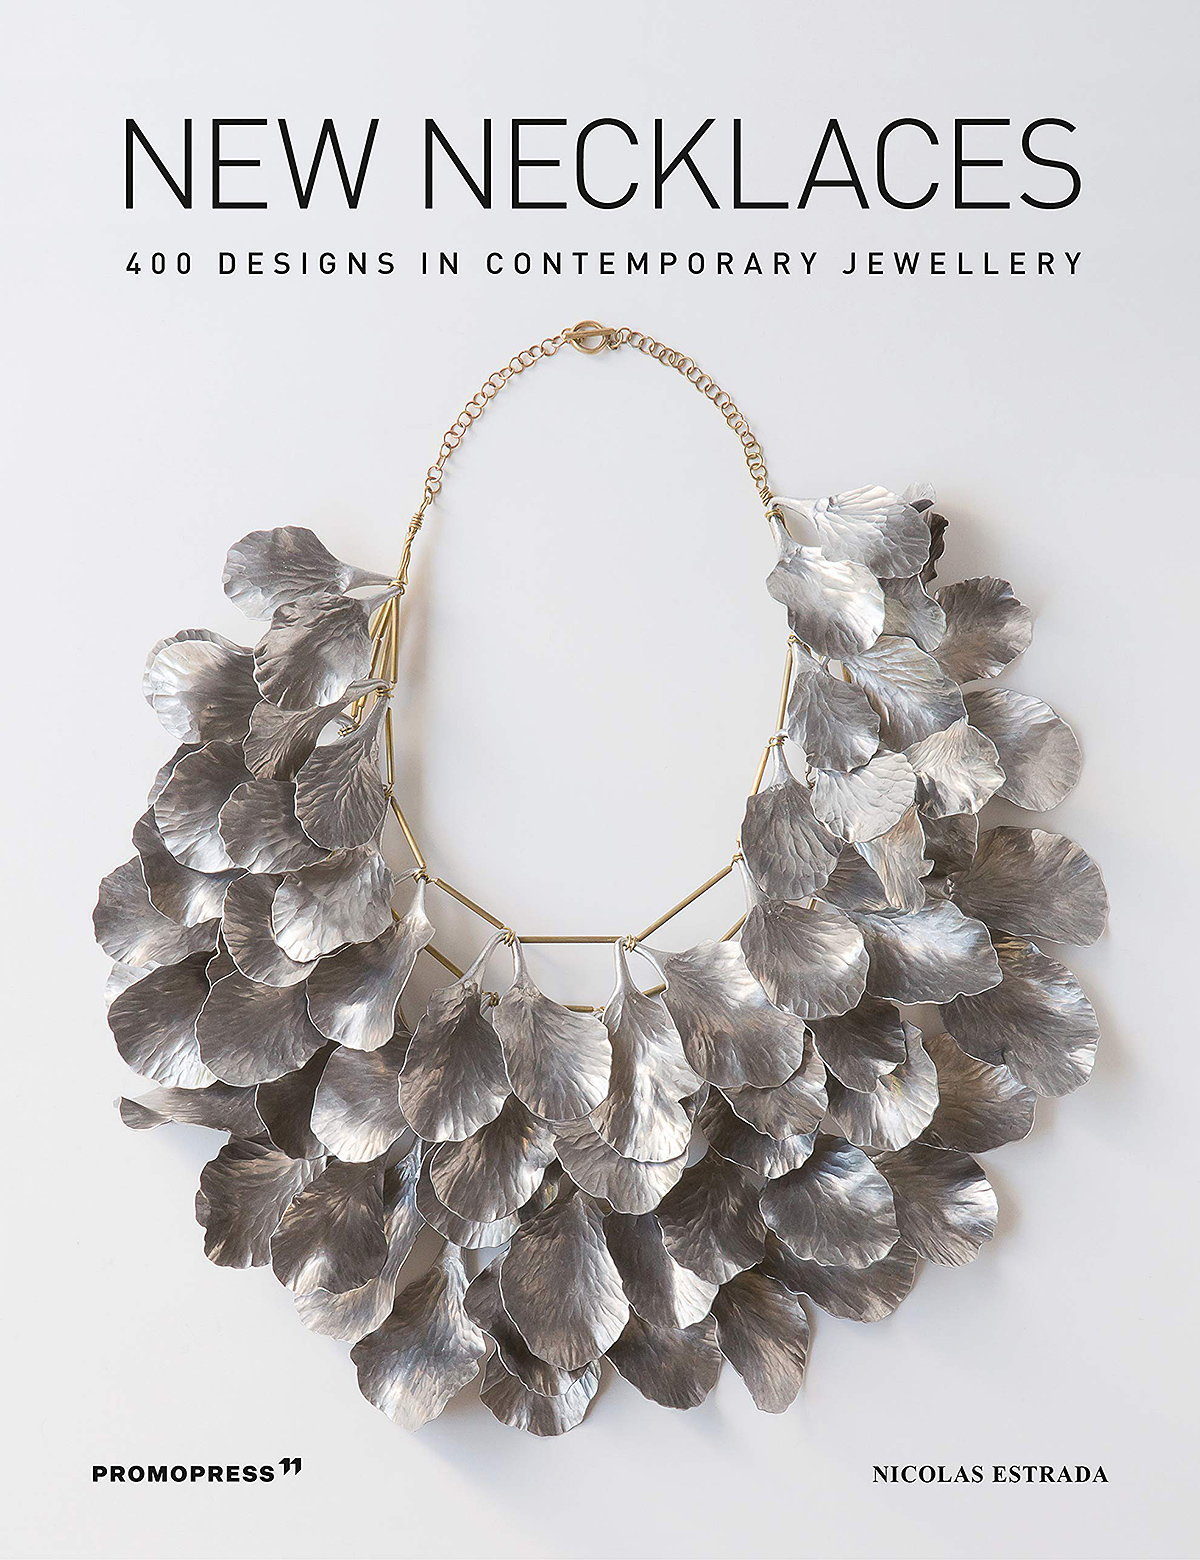 New Necklaces - 400 Designs in Contemporary Jewellery